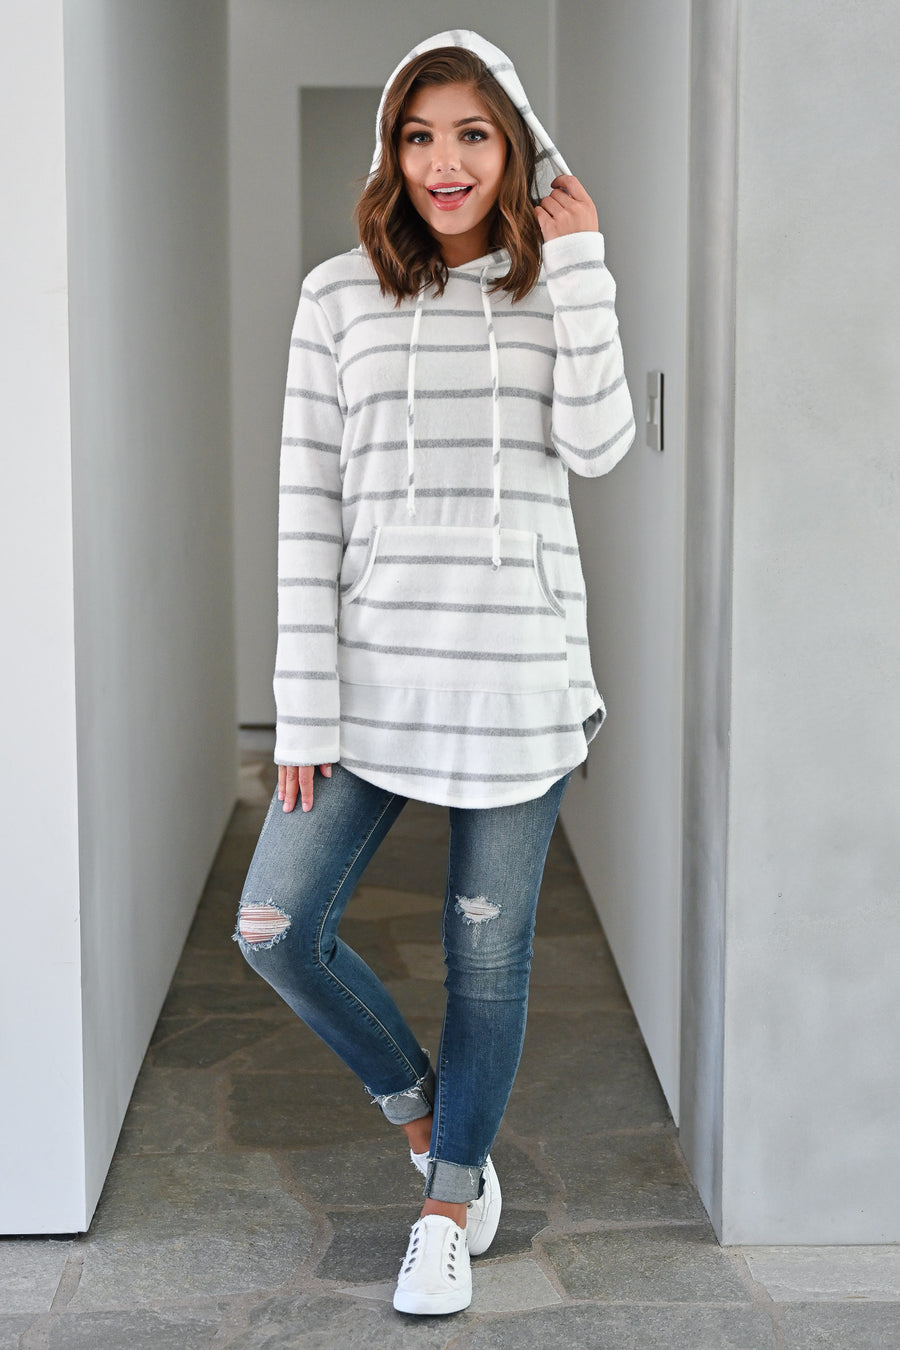 Soul Mates Striped Hoodie - White womens casual hooded striped pullover closet candy close